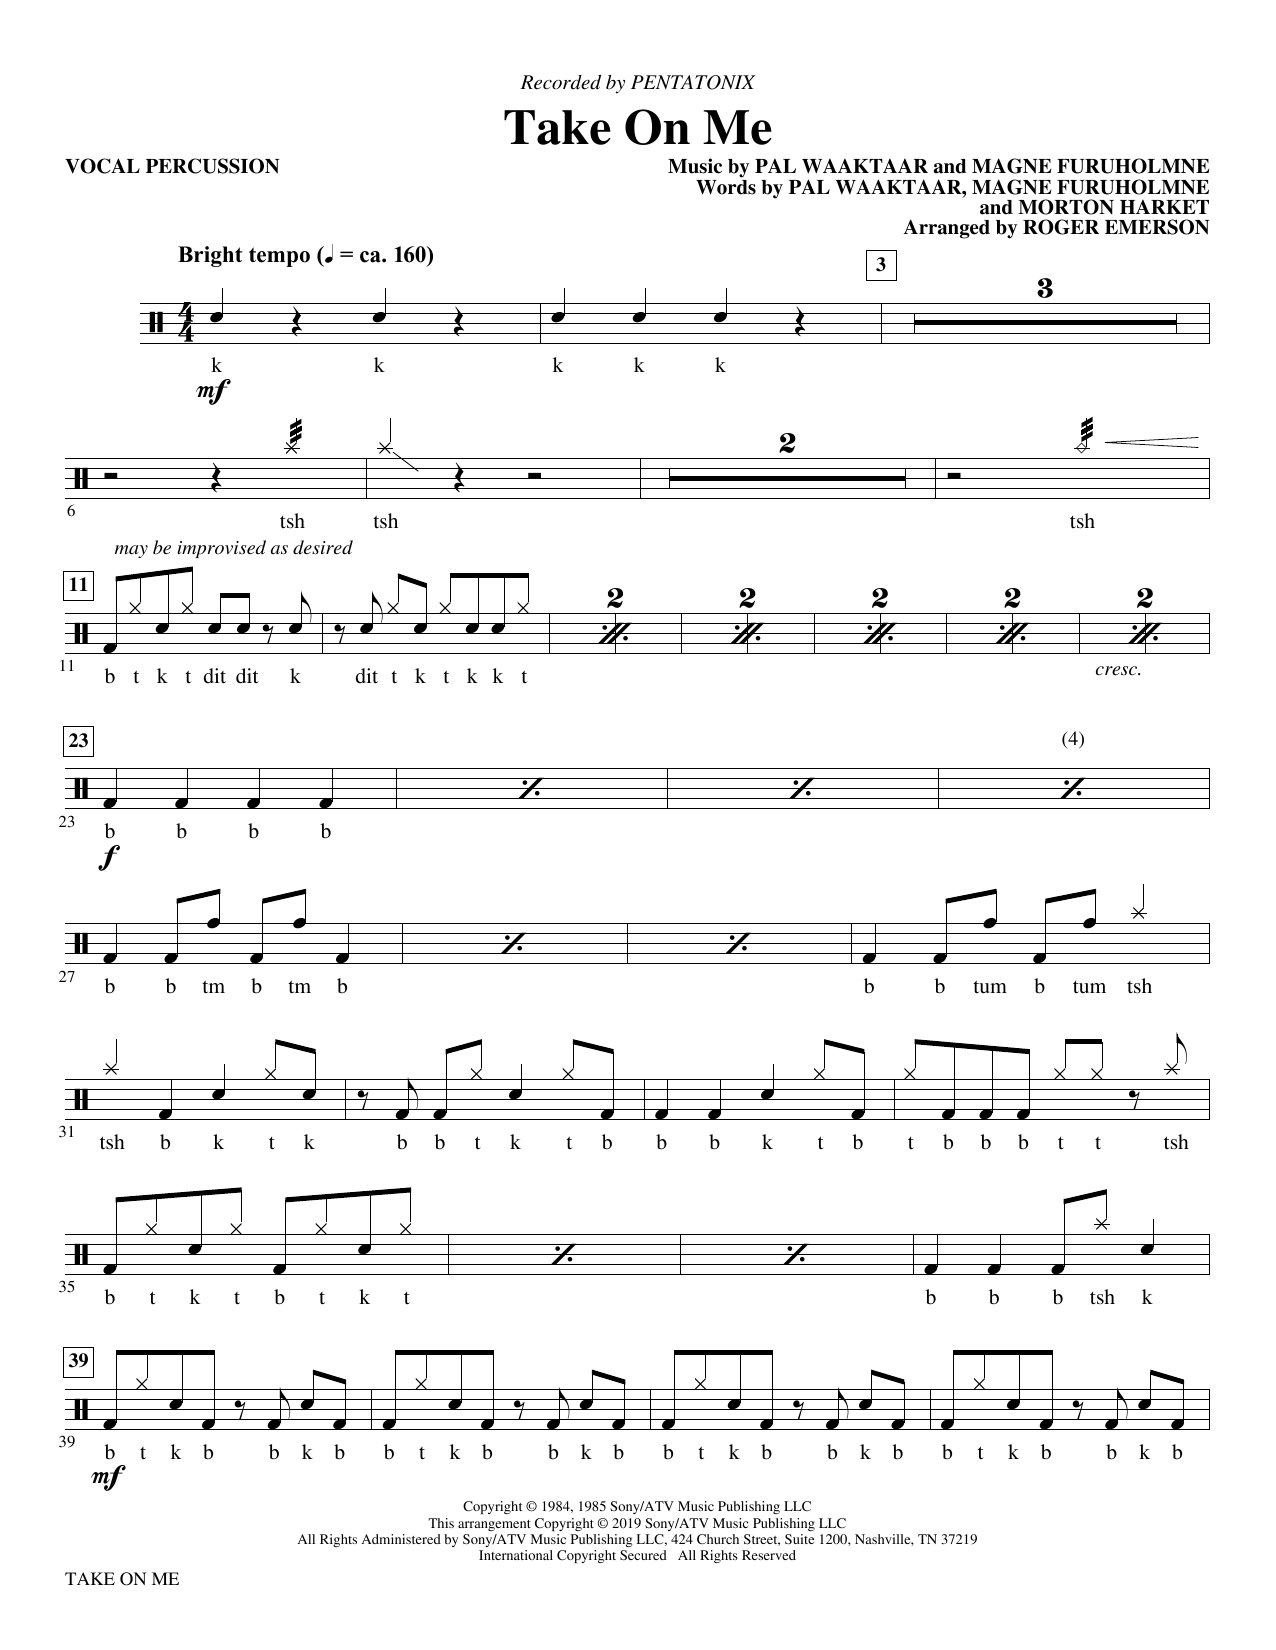 Take on Me (arr. Roger Emerson) - Vocal Percussion Sheet Music